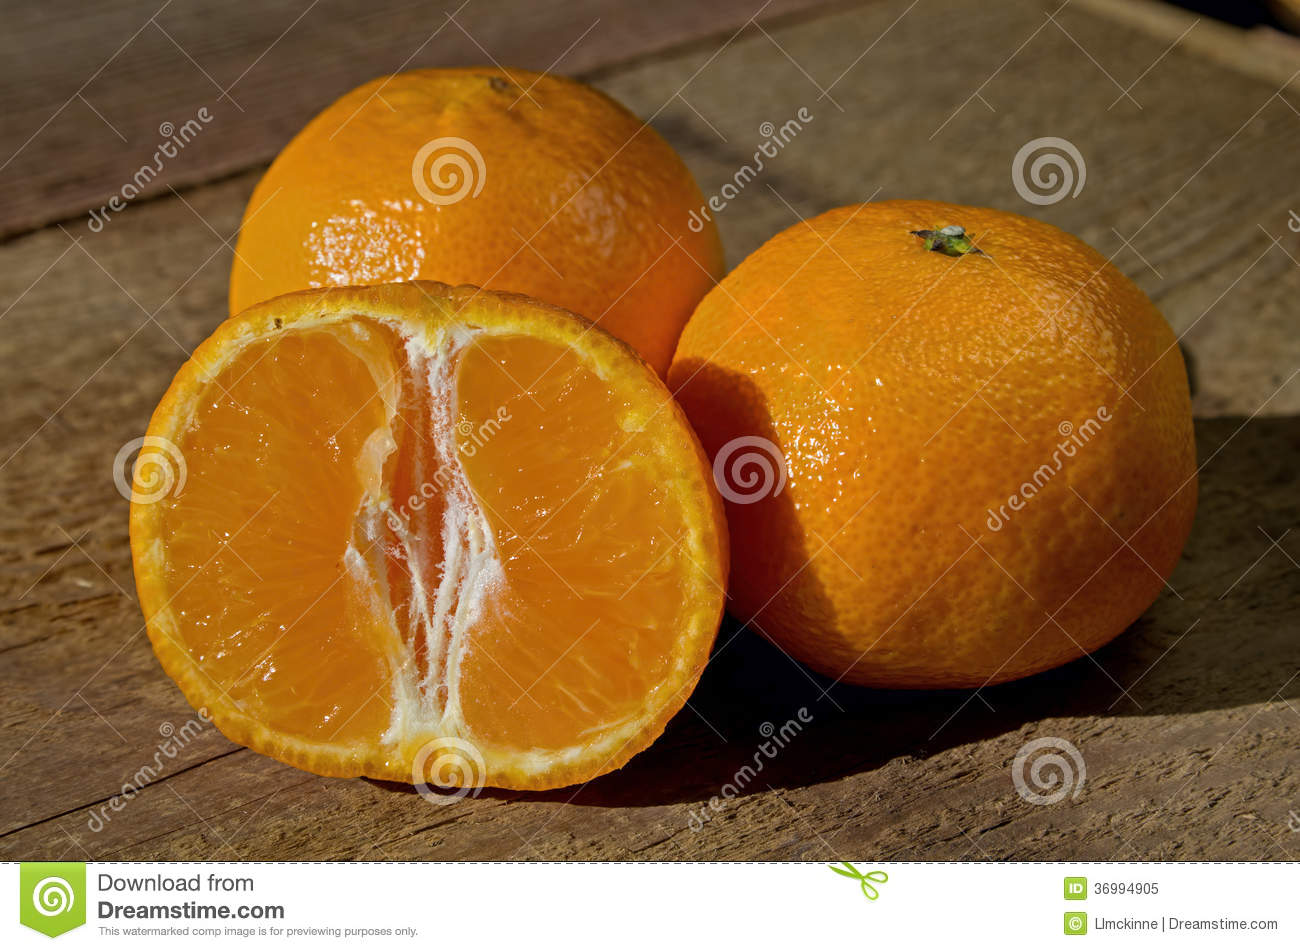 between a mandarin and an orange the skin is a deep orange color